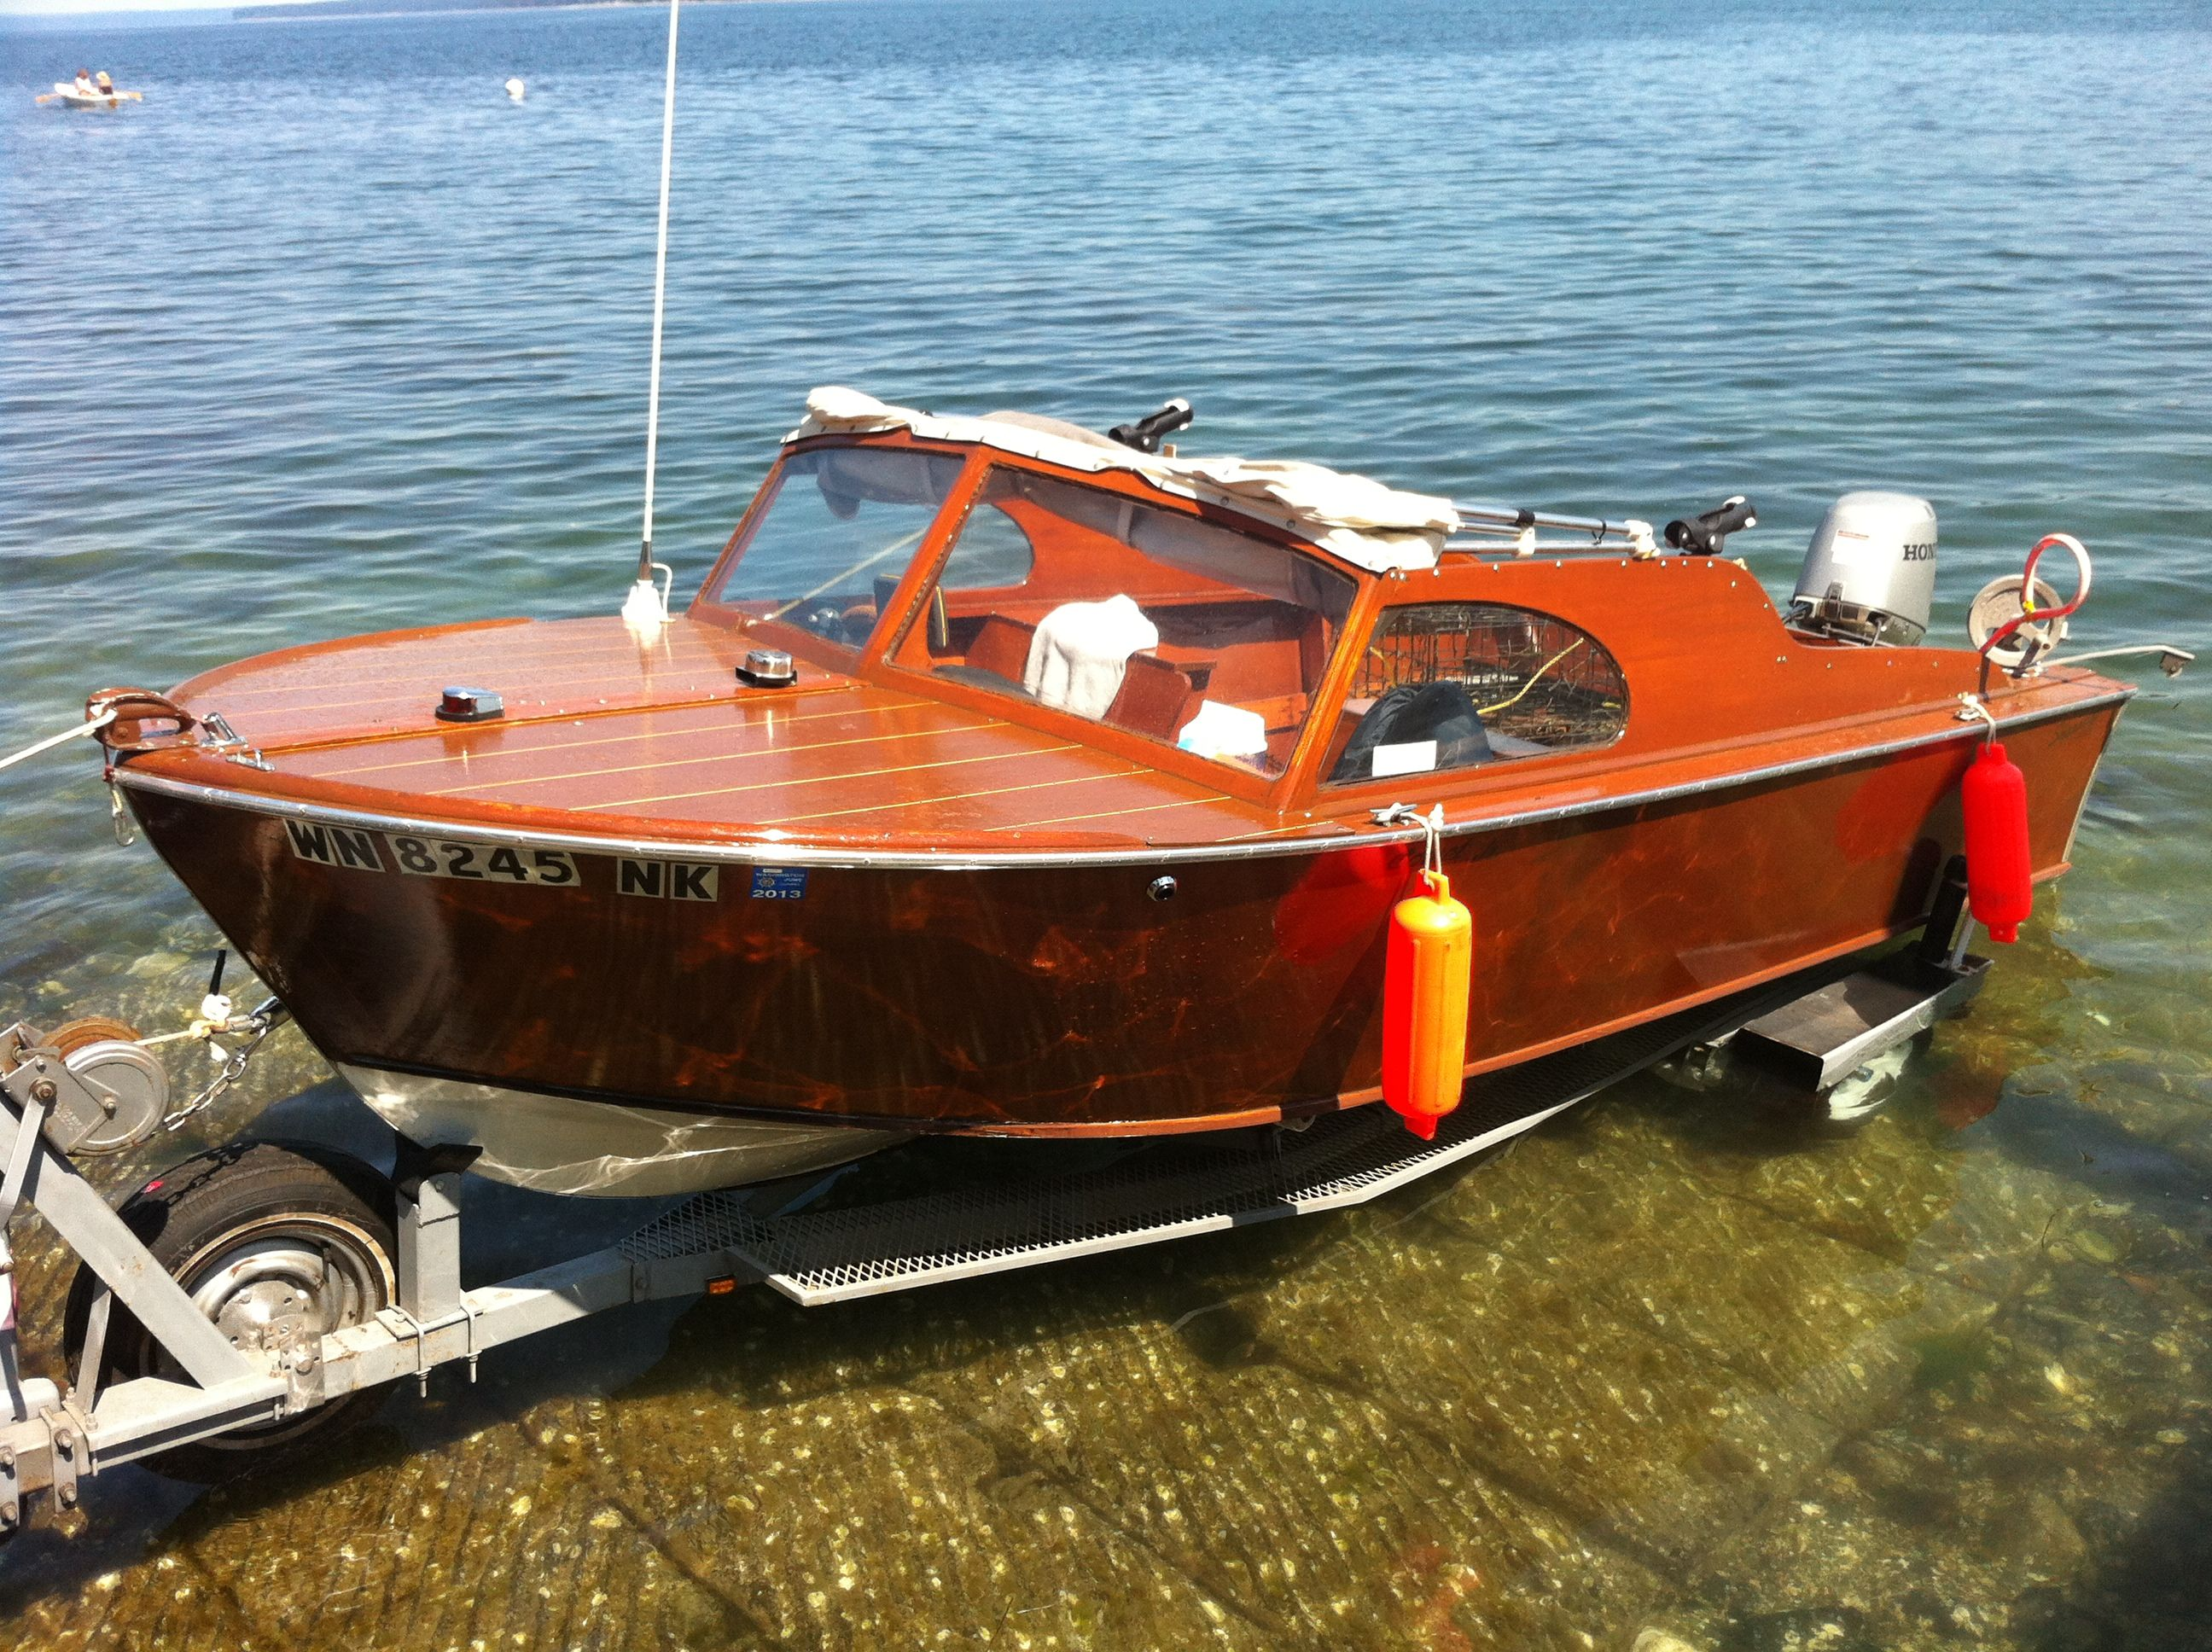 Stitch And Glue Boat Design How Do You Build A Boat On In 2020 Wooden Boats Boat Boat Plans